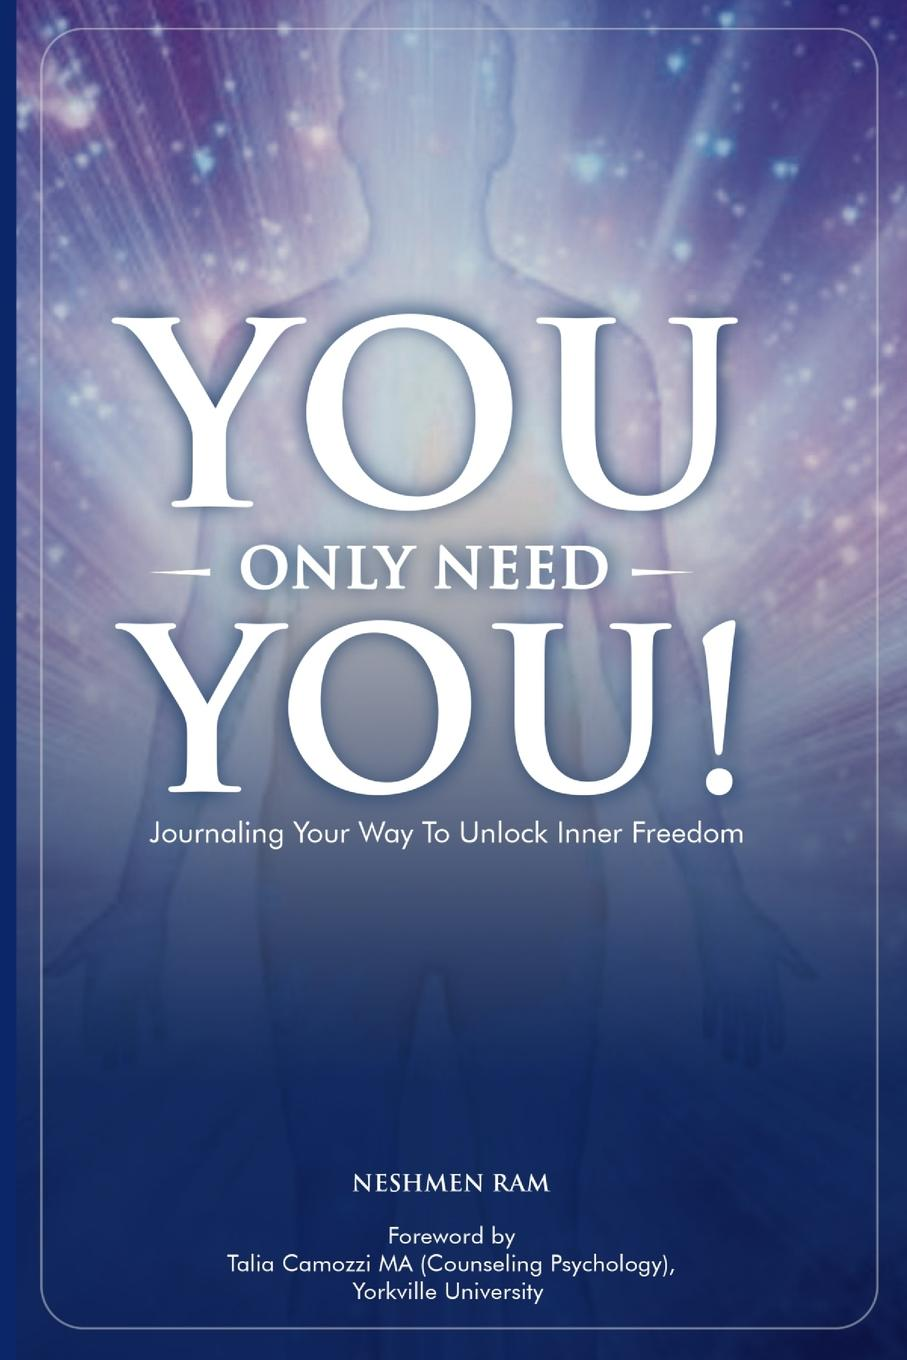 Neshmen Ram My Paperback Book mike robbins be yourself everyone else is already taken transform your life with the power of authenticity